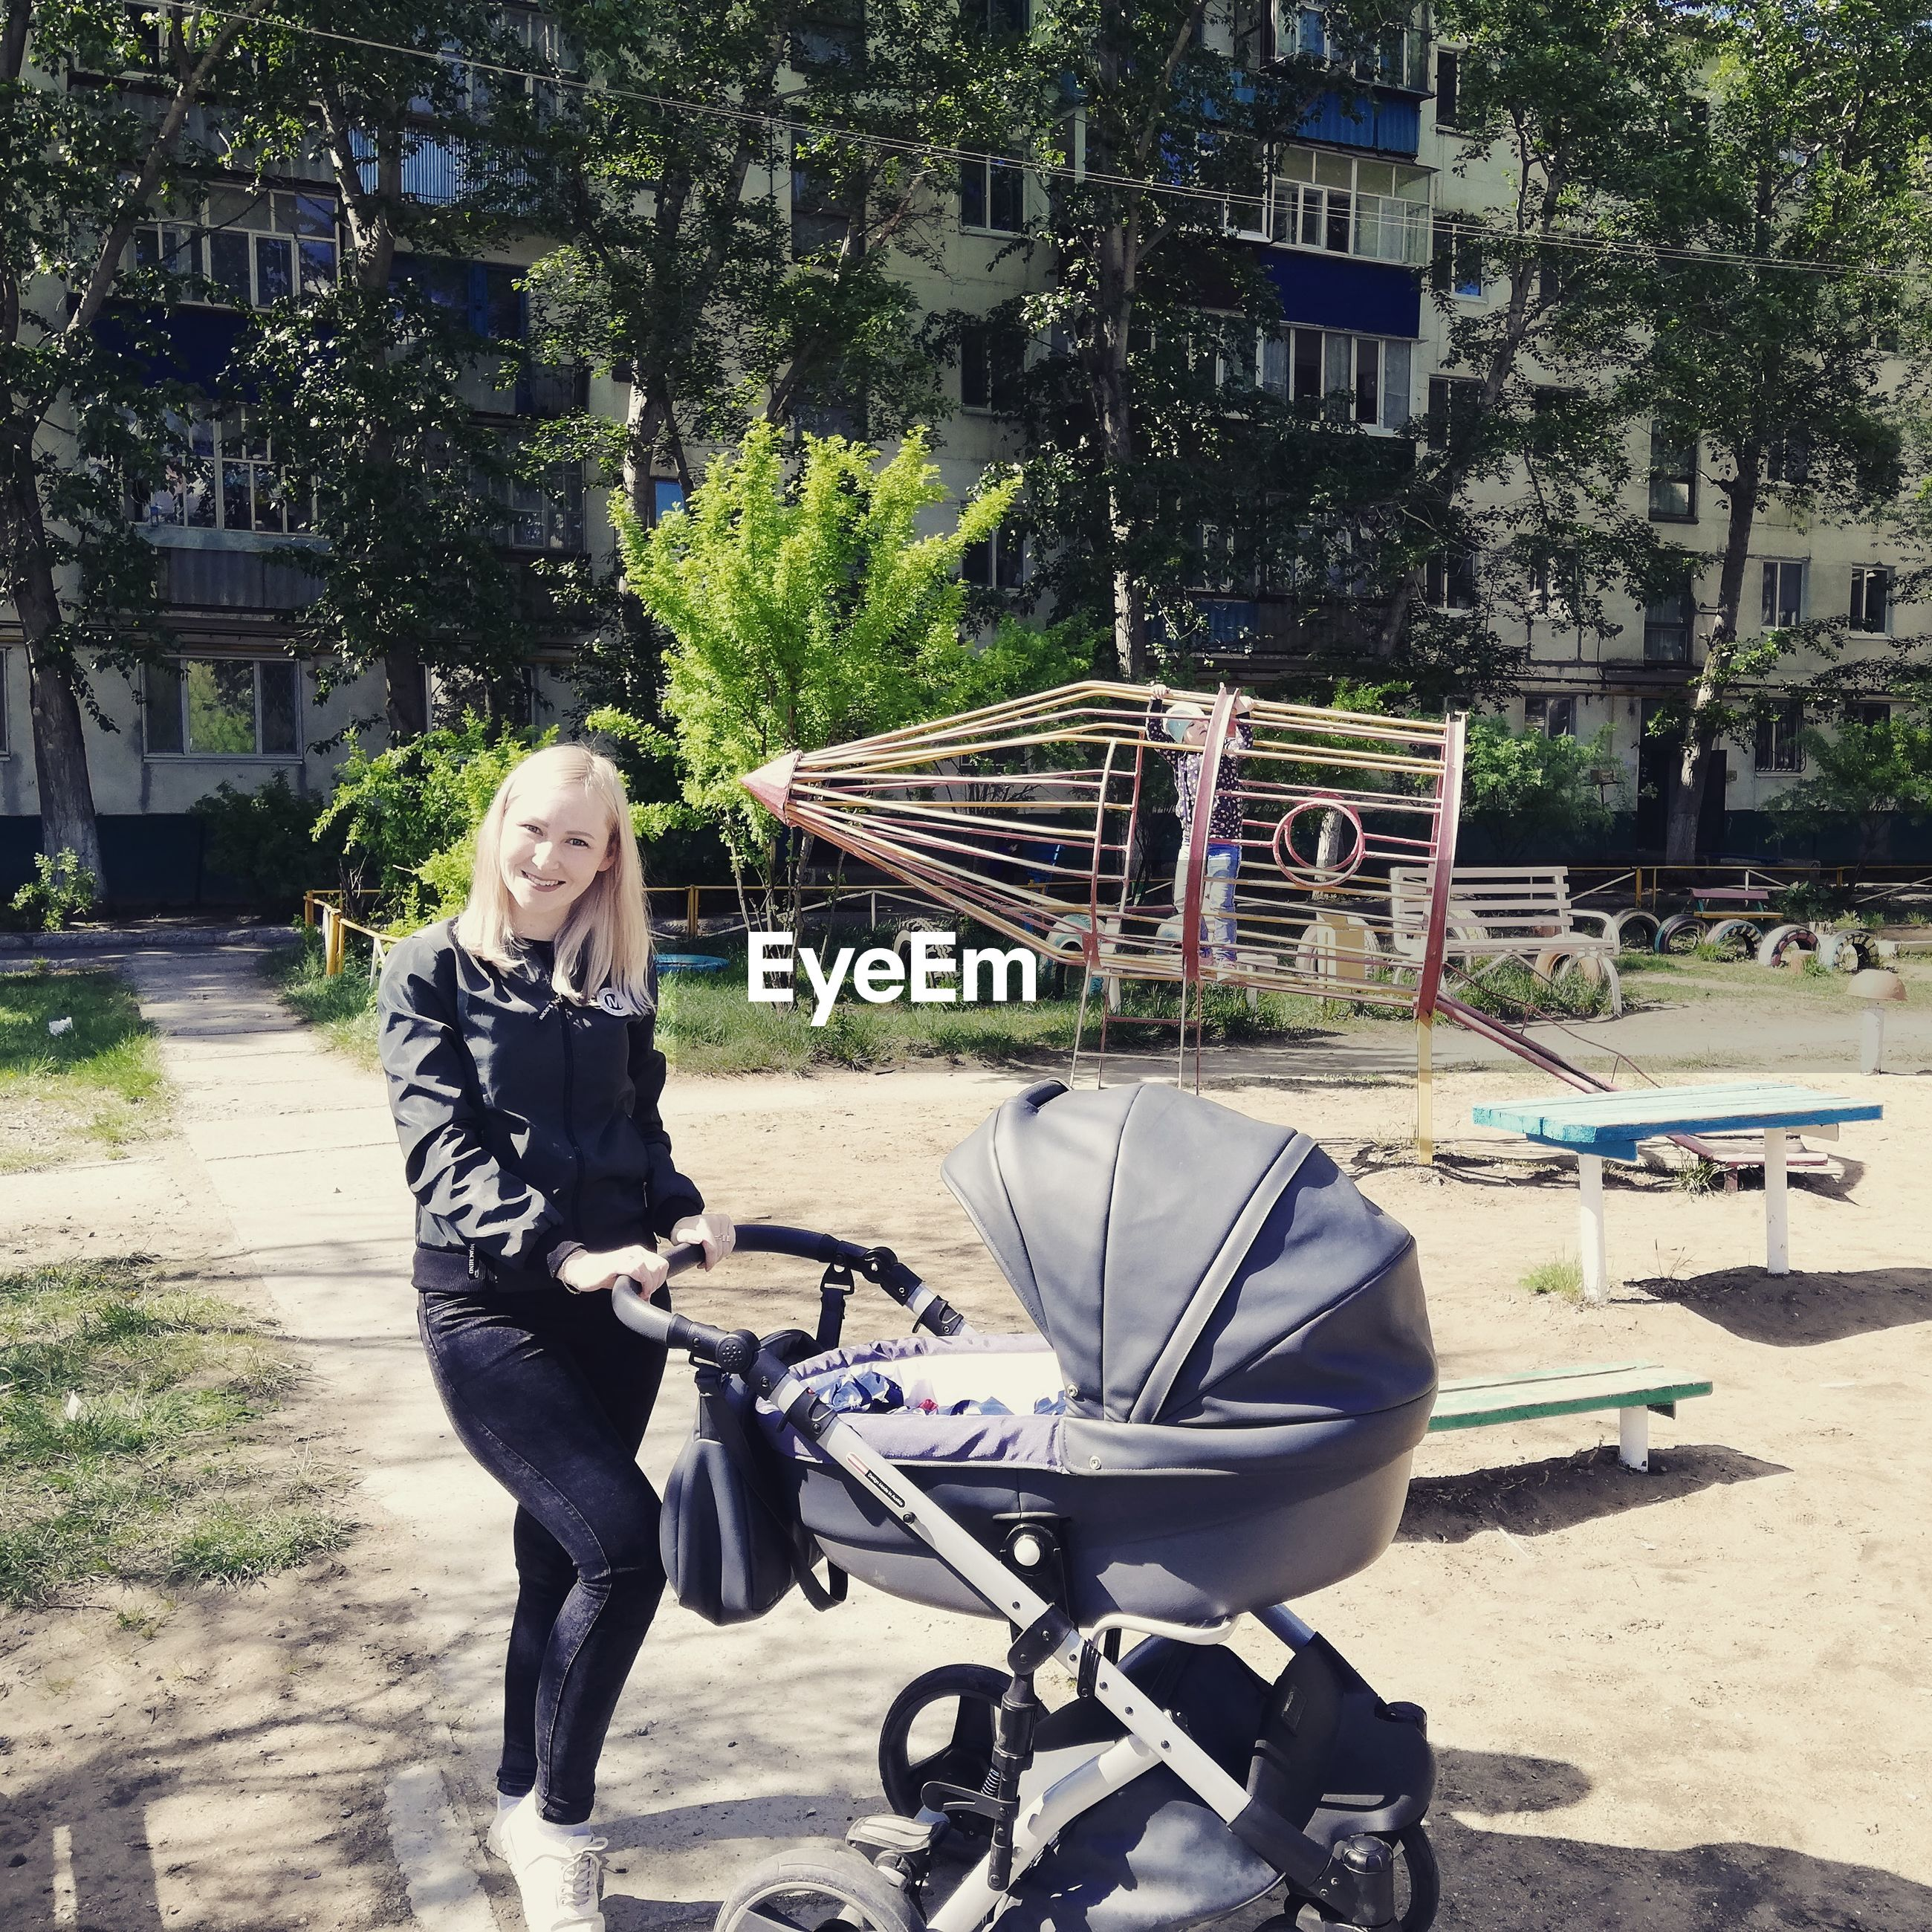 Full length of woman holding baby stroller while standing in city